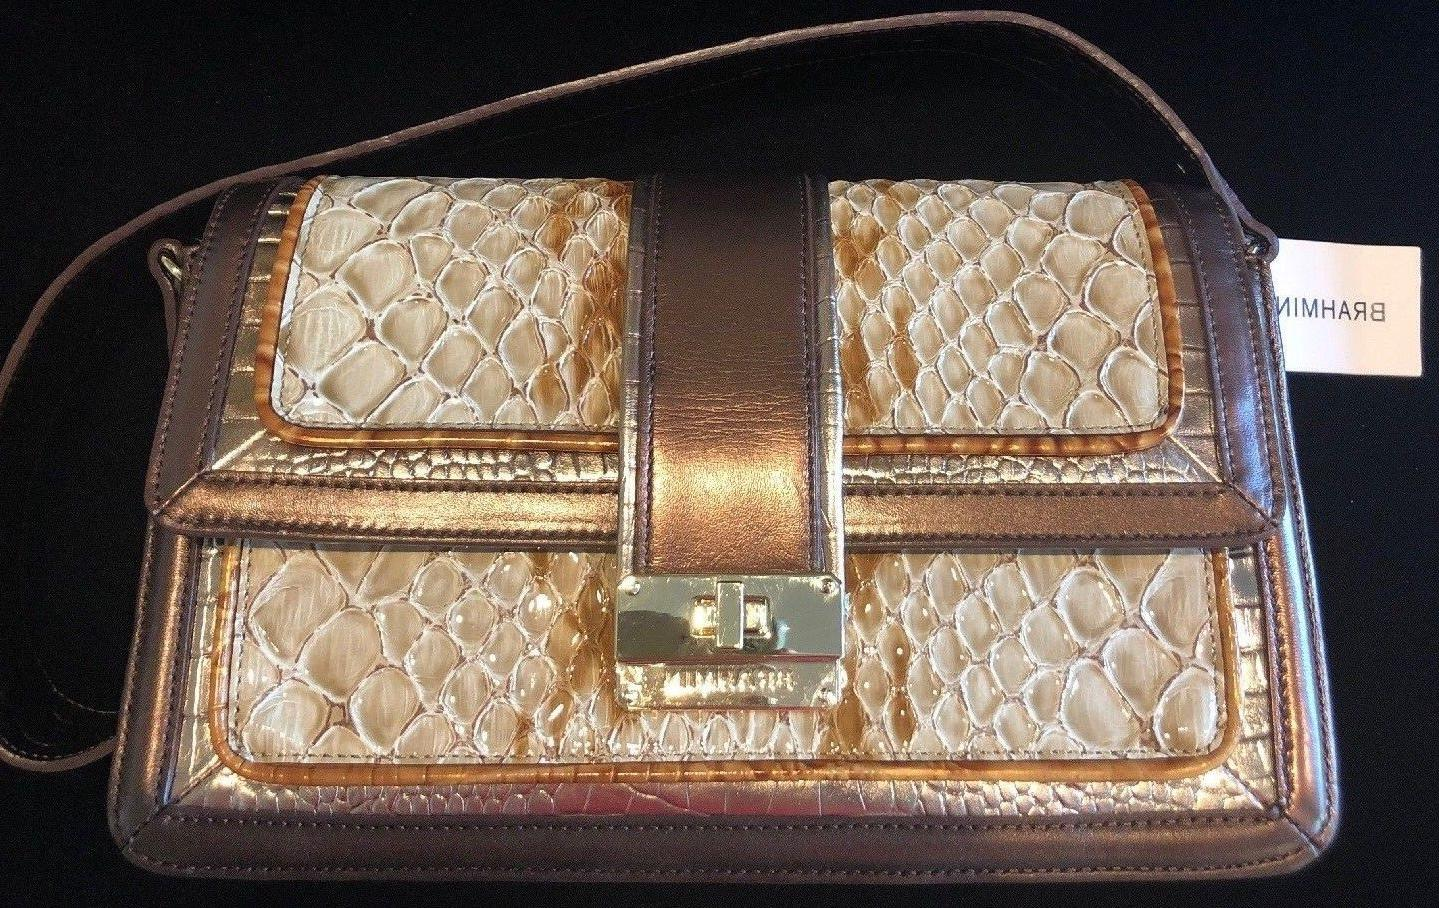 maria honey carlisle genuine leather purse new